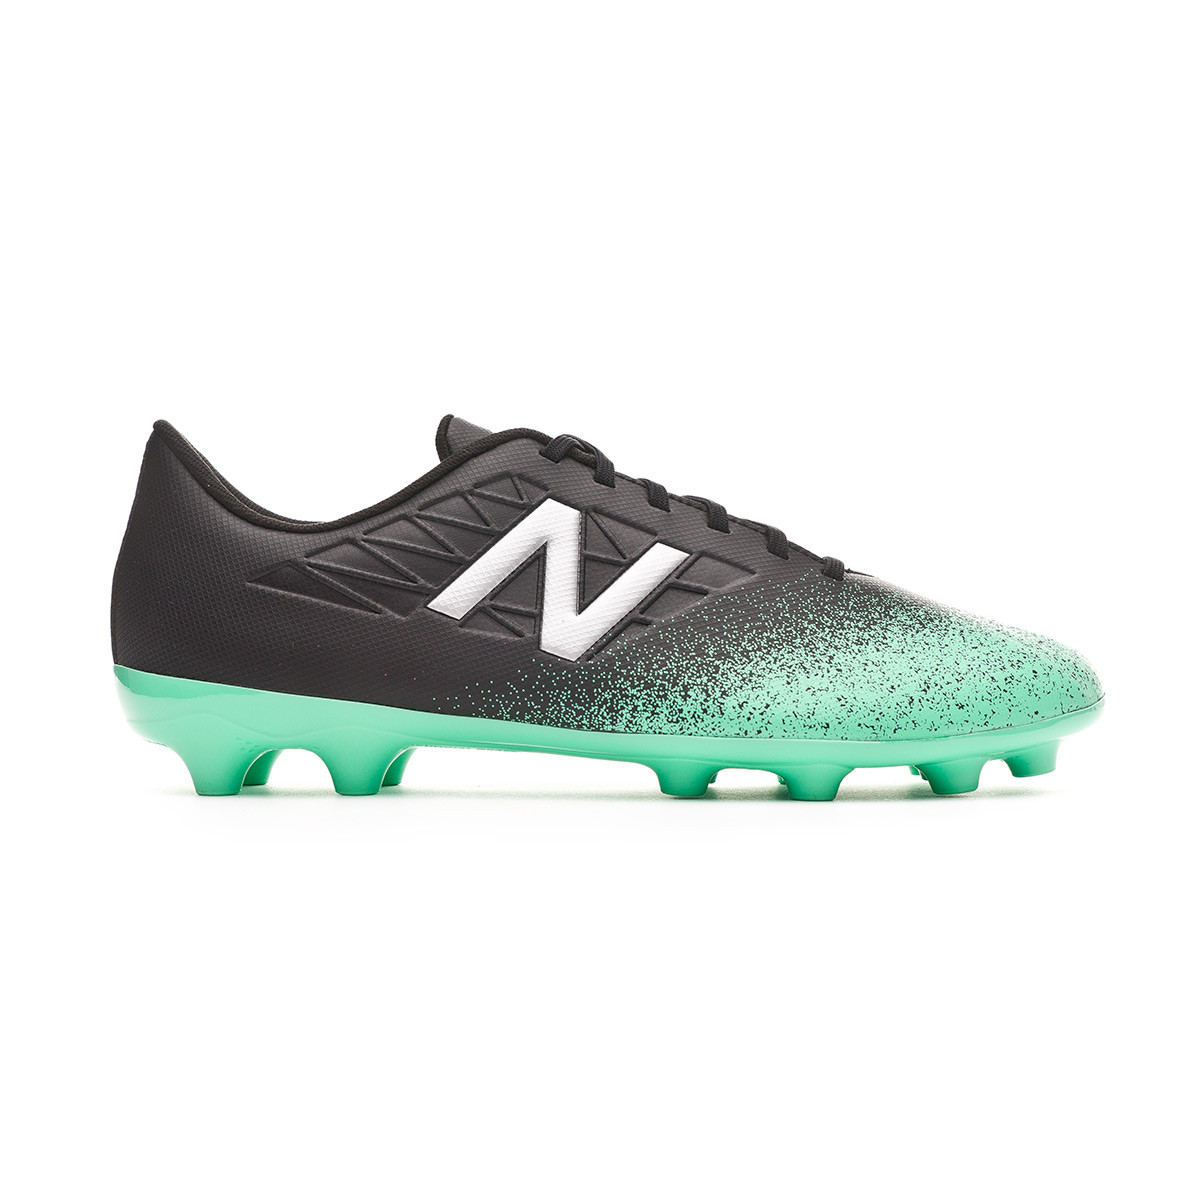 0af56d9b2fc34 Football Boots New Balance Kids Furon v5 Dispatch AG Neon emerald-Black -  Football store Fútbol Emotion